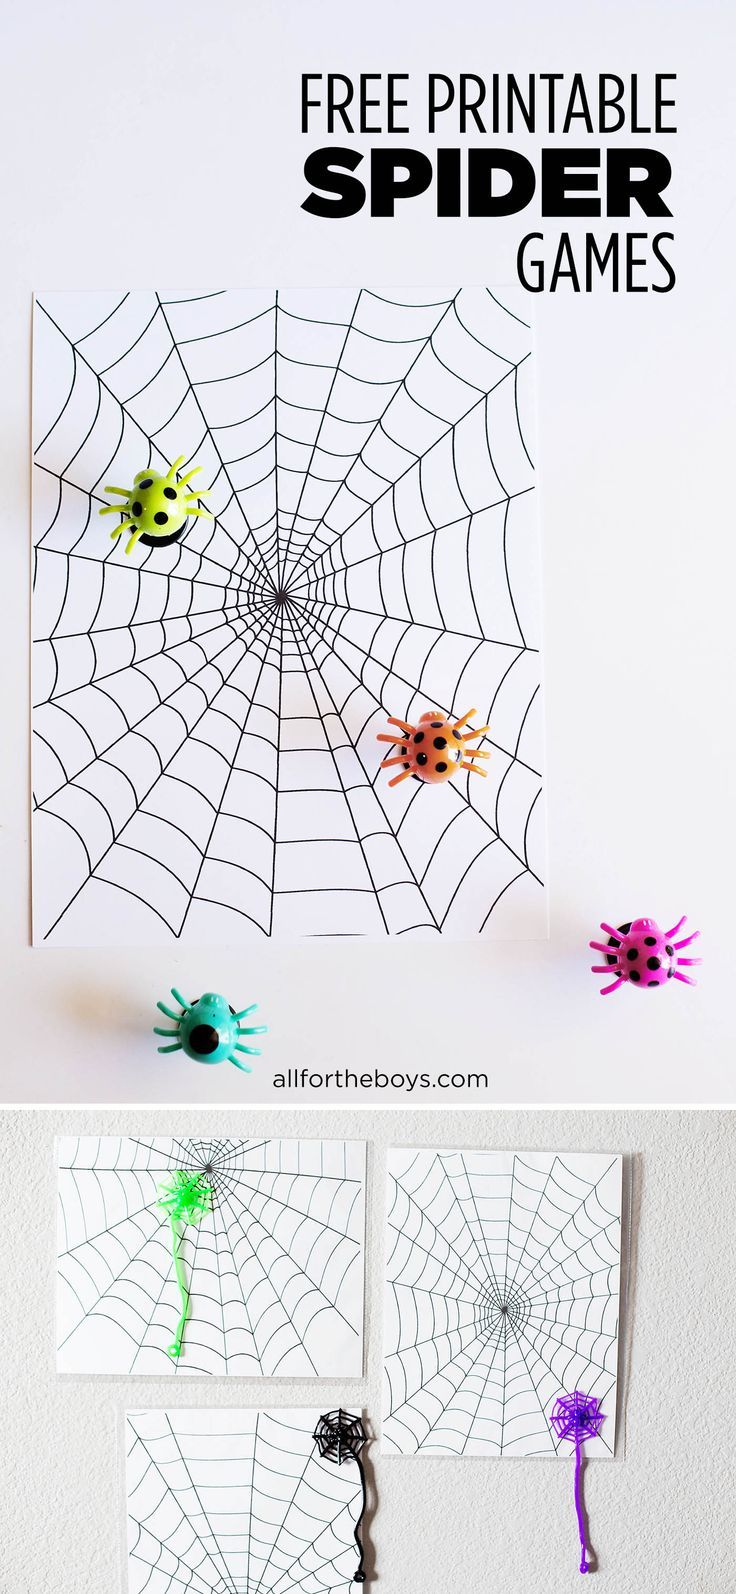 Printable Spider Games | Pinterest | Free printable, Home and Plays